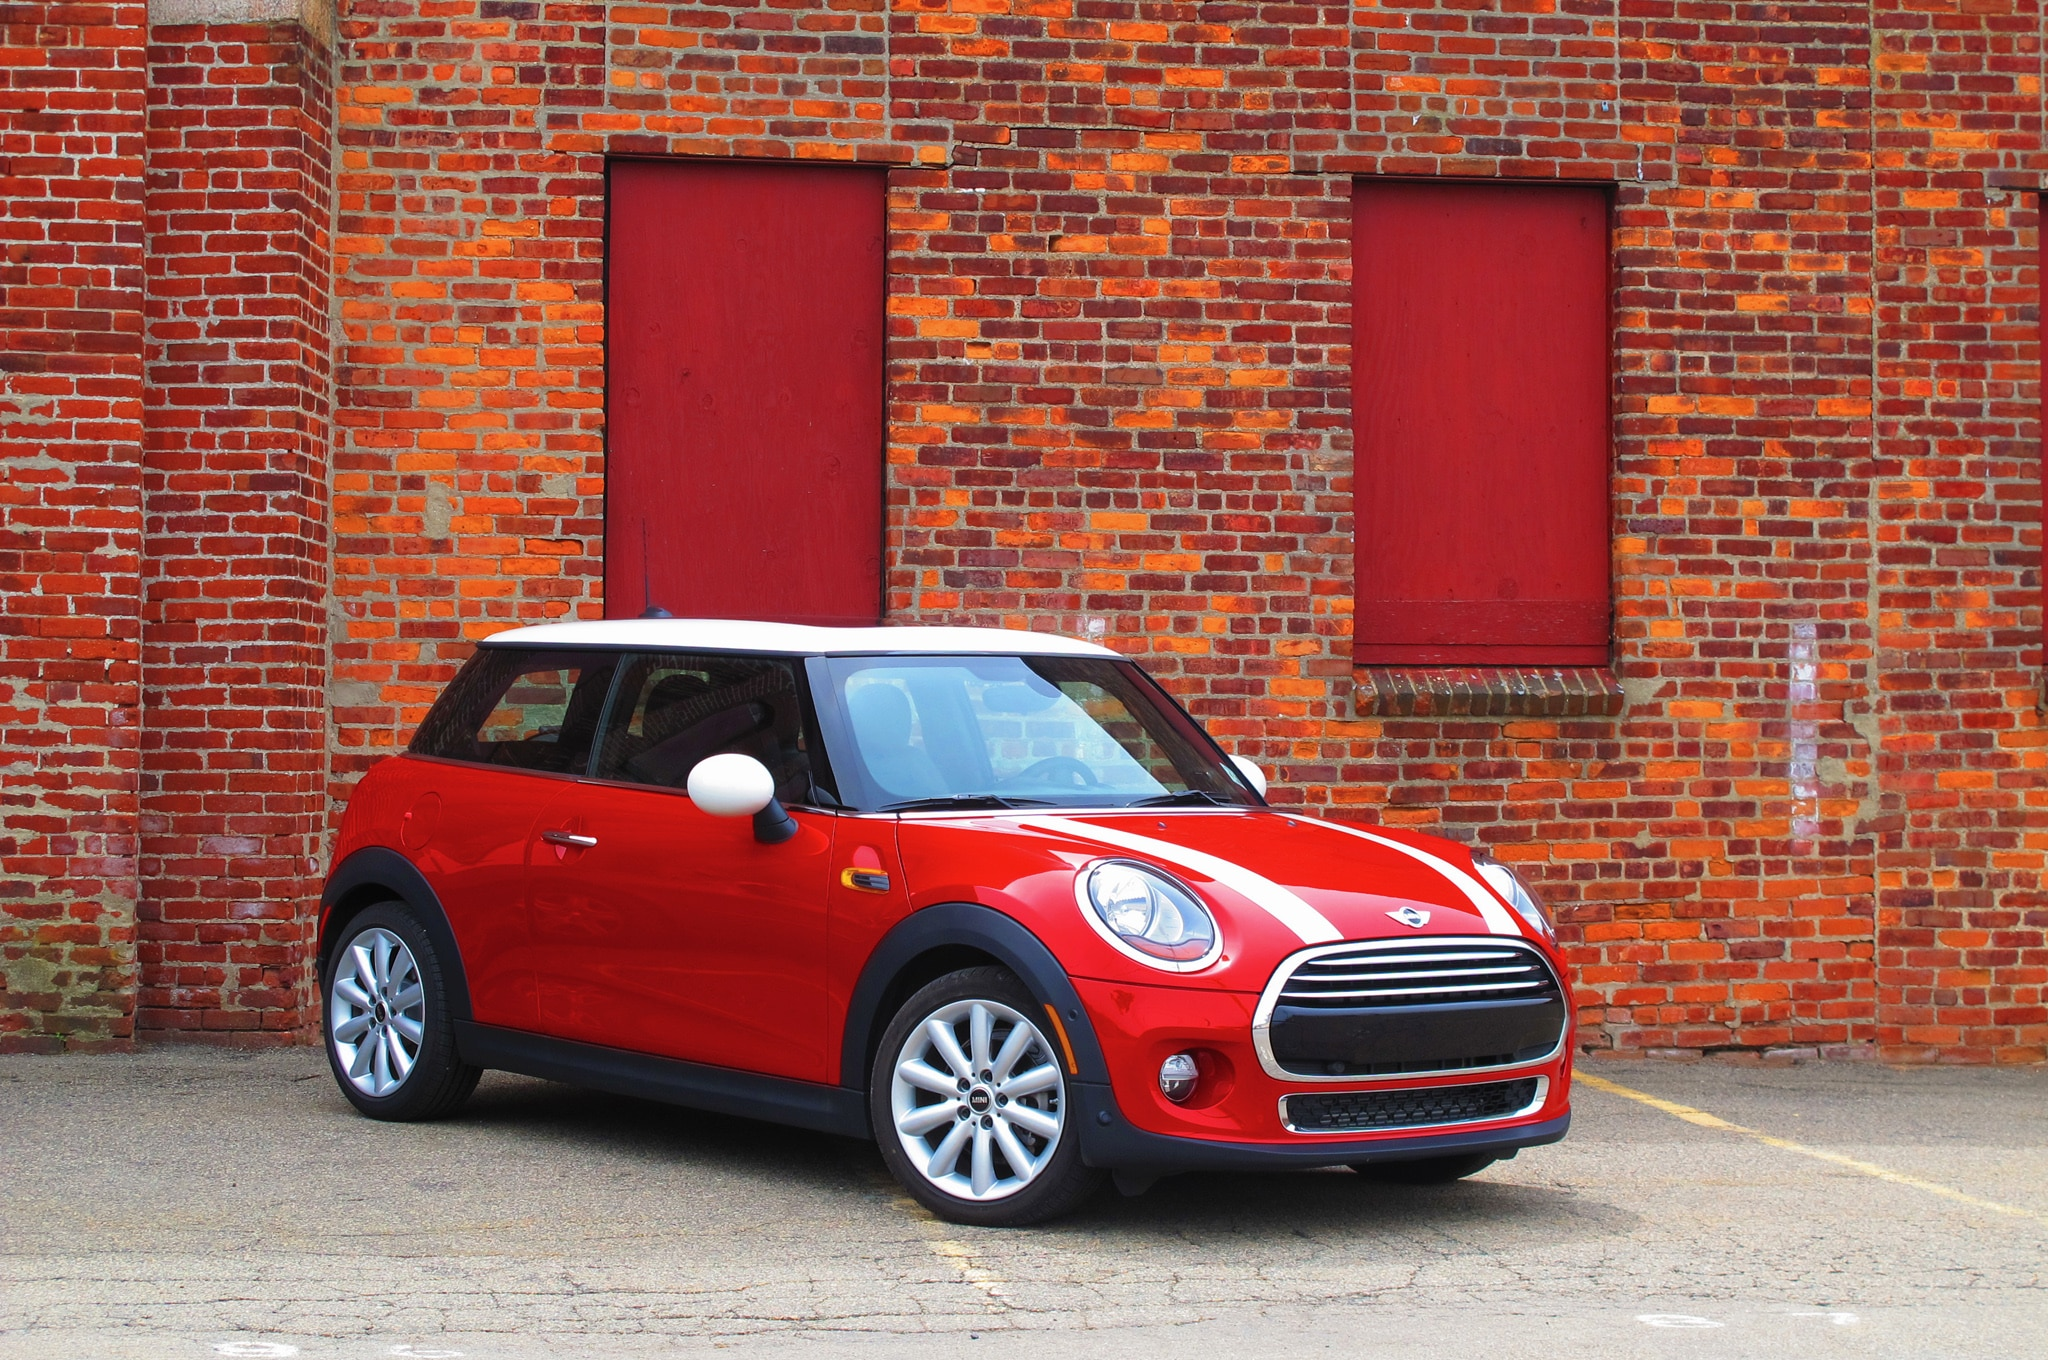 2014 Mini Cooper Front Three Quarters Brick Wall1